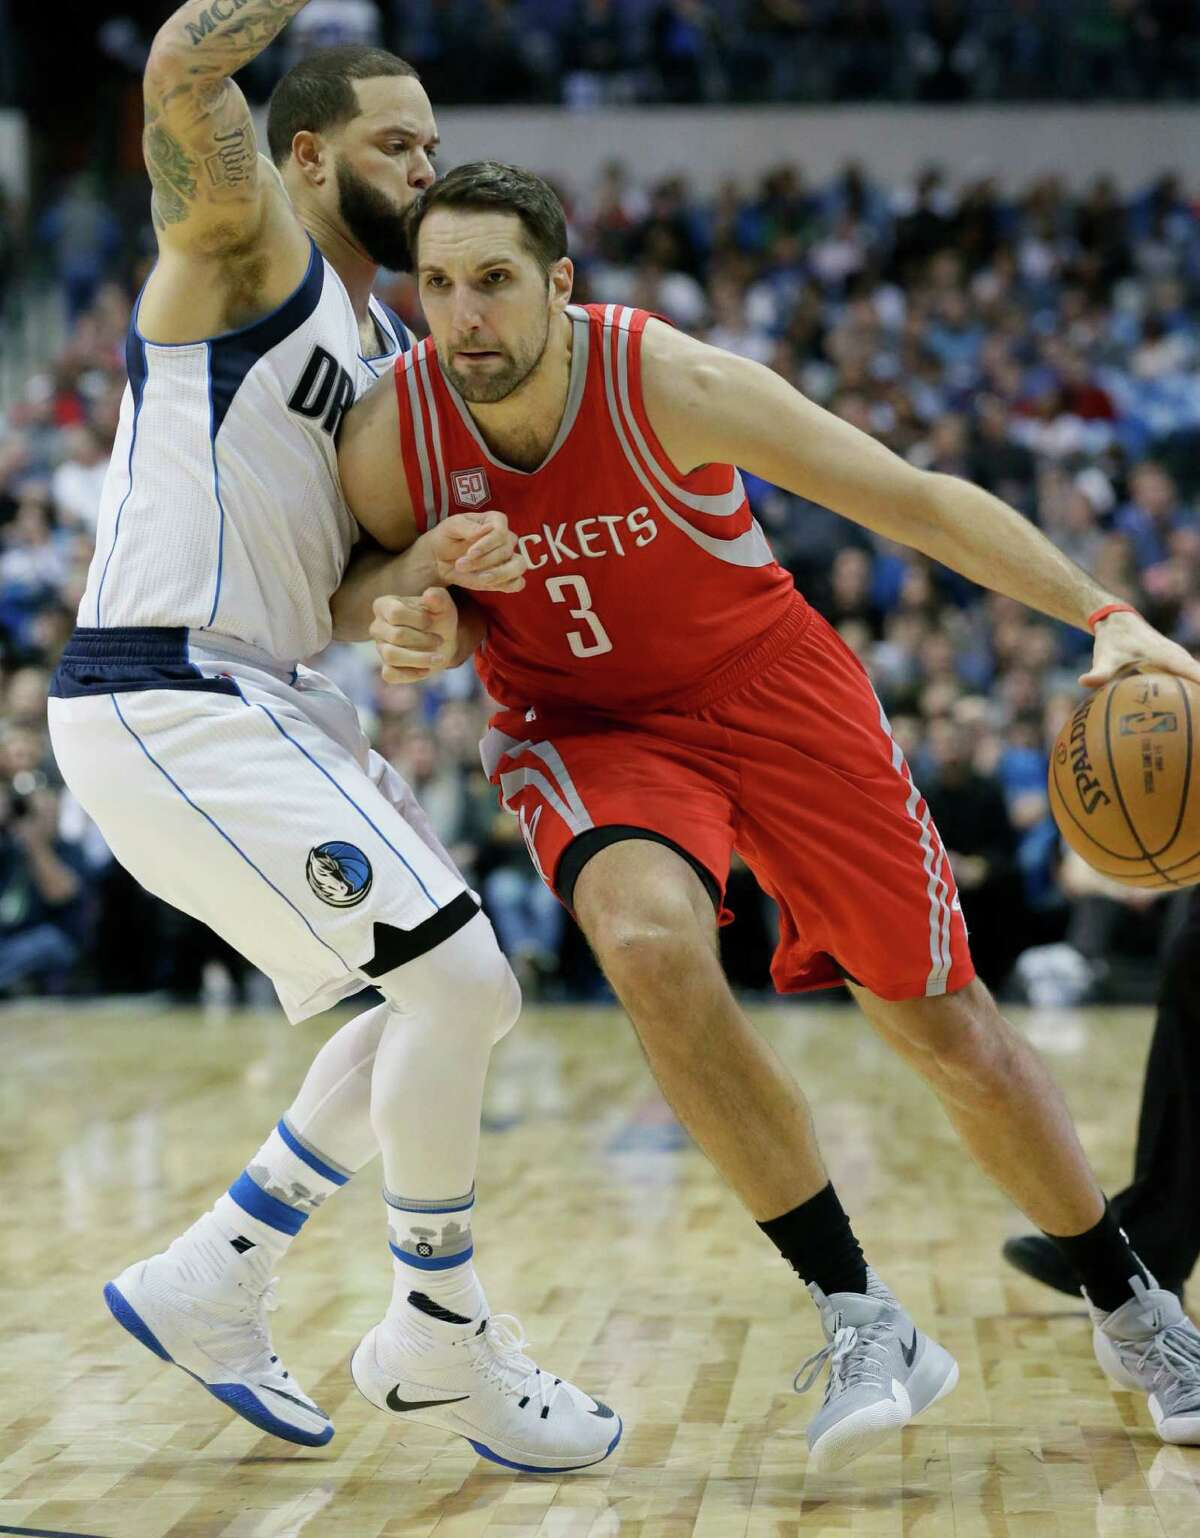 Houston Rockets forward Ryan Anderson (3) drives against Dallas Mavericks guard Deron Williams (8) during the first half of an NBA basketball game in Dallas, Tuesday, Dec. 27, 2016. (AP Photo/LM Otero)